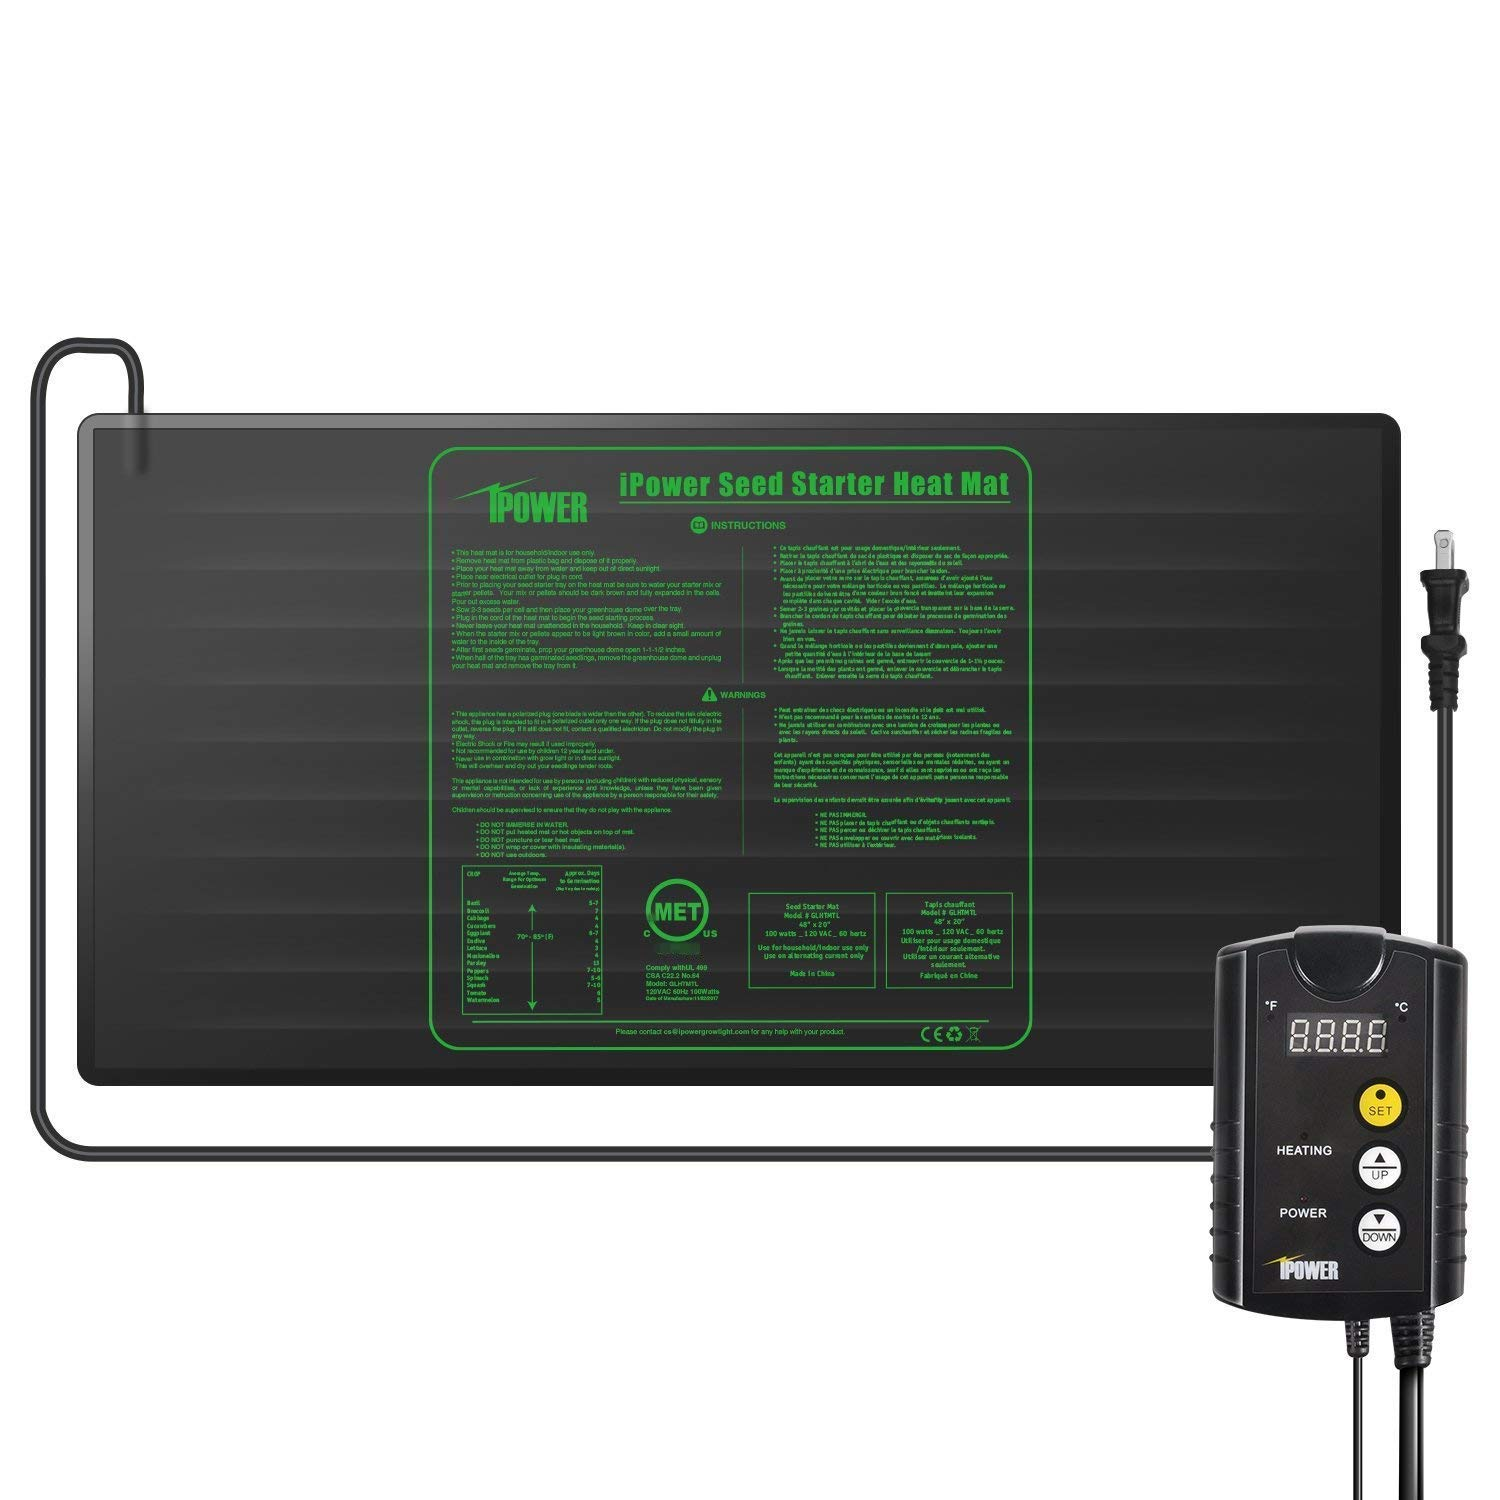 iPower 48 x 20 Warm Hydroponic Seedling Heat Mat and Digital Thermostat Control Combo Set for Seed Germination